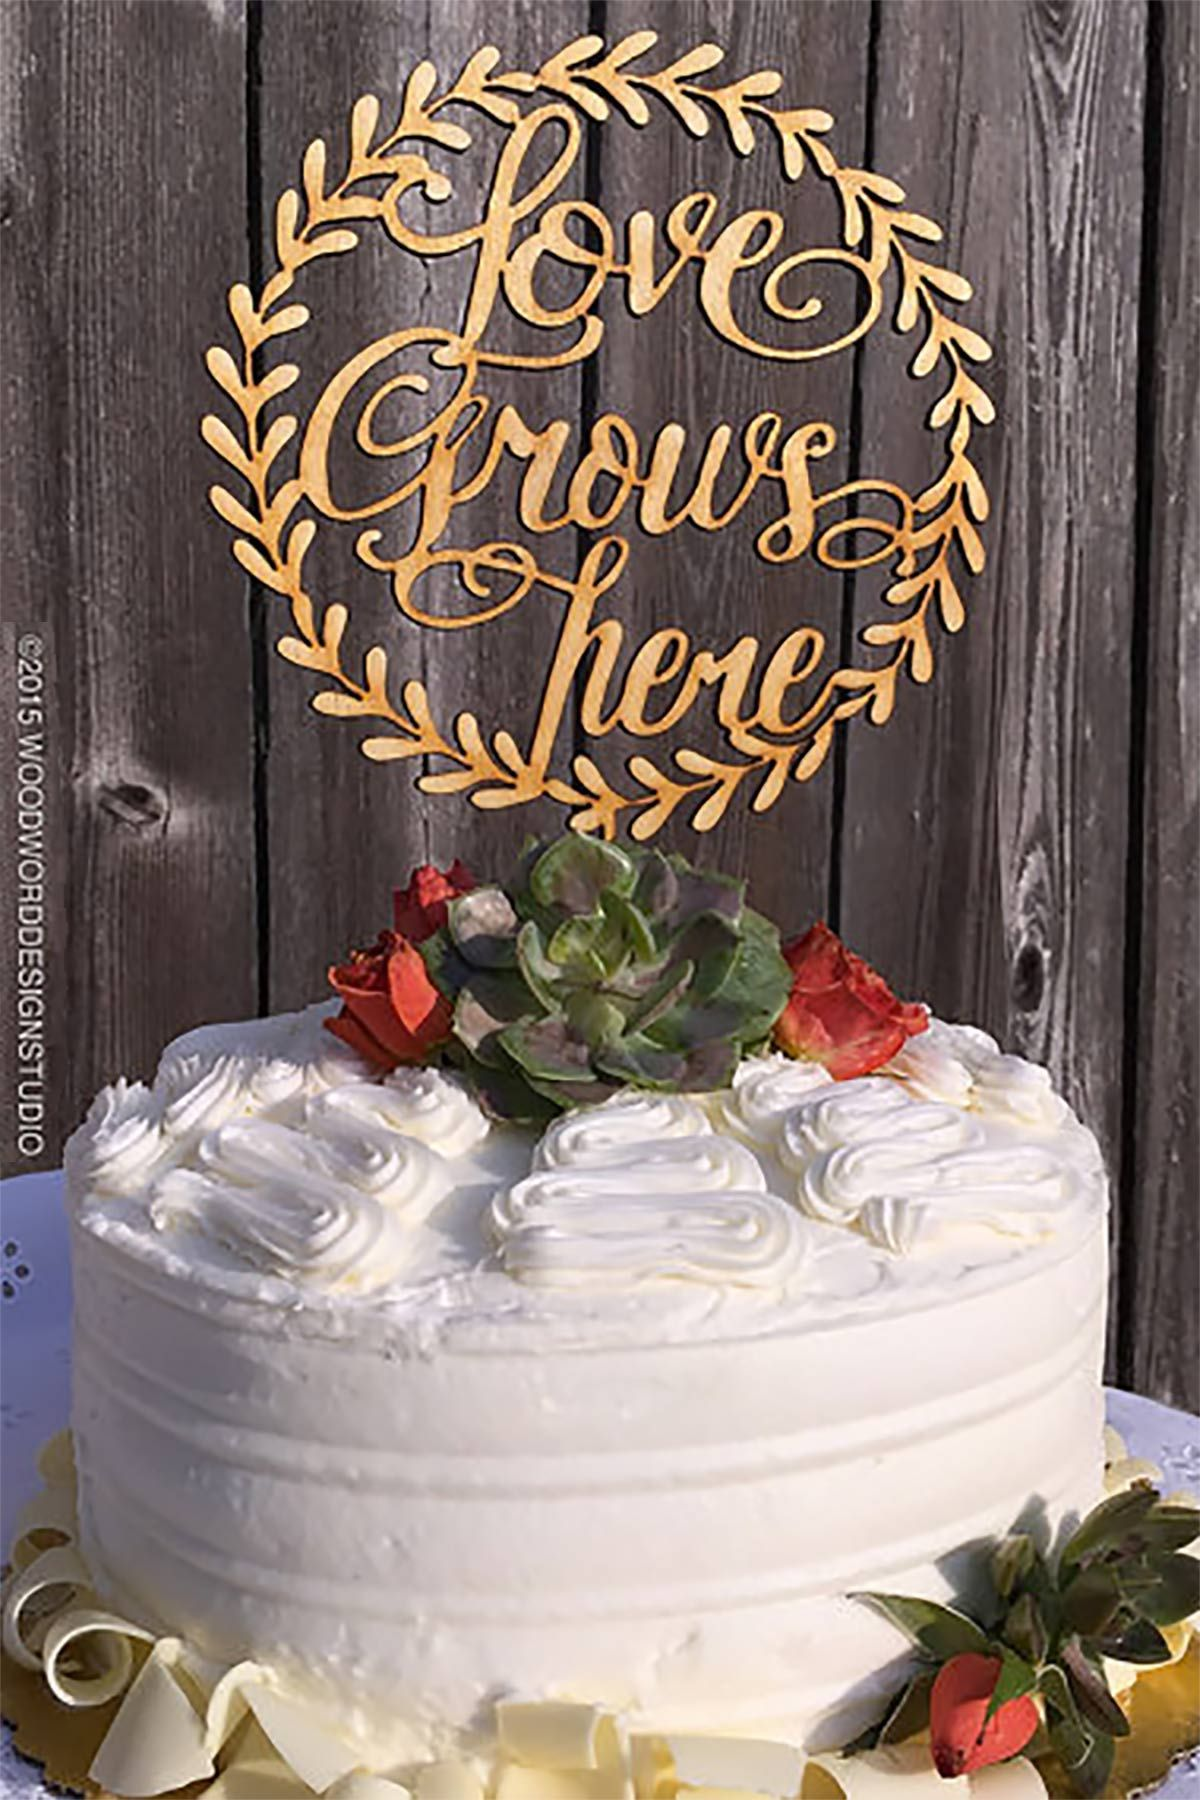 Love cake toppers page of country and rustic theme weddings